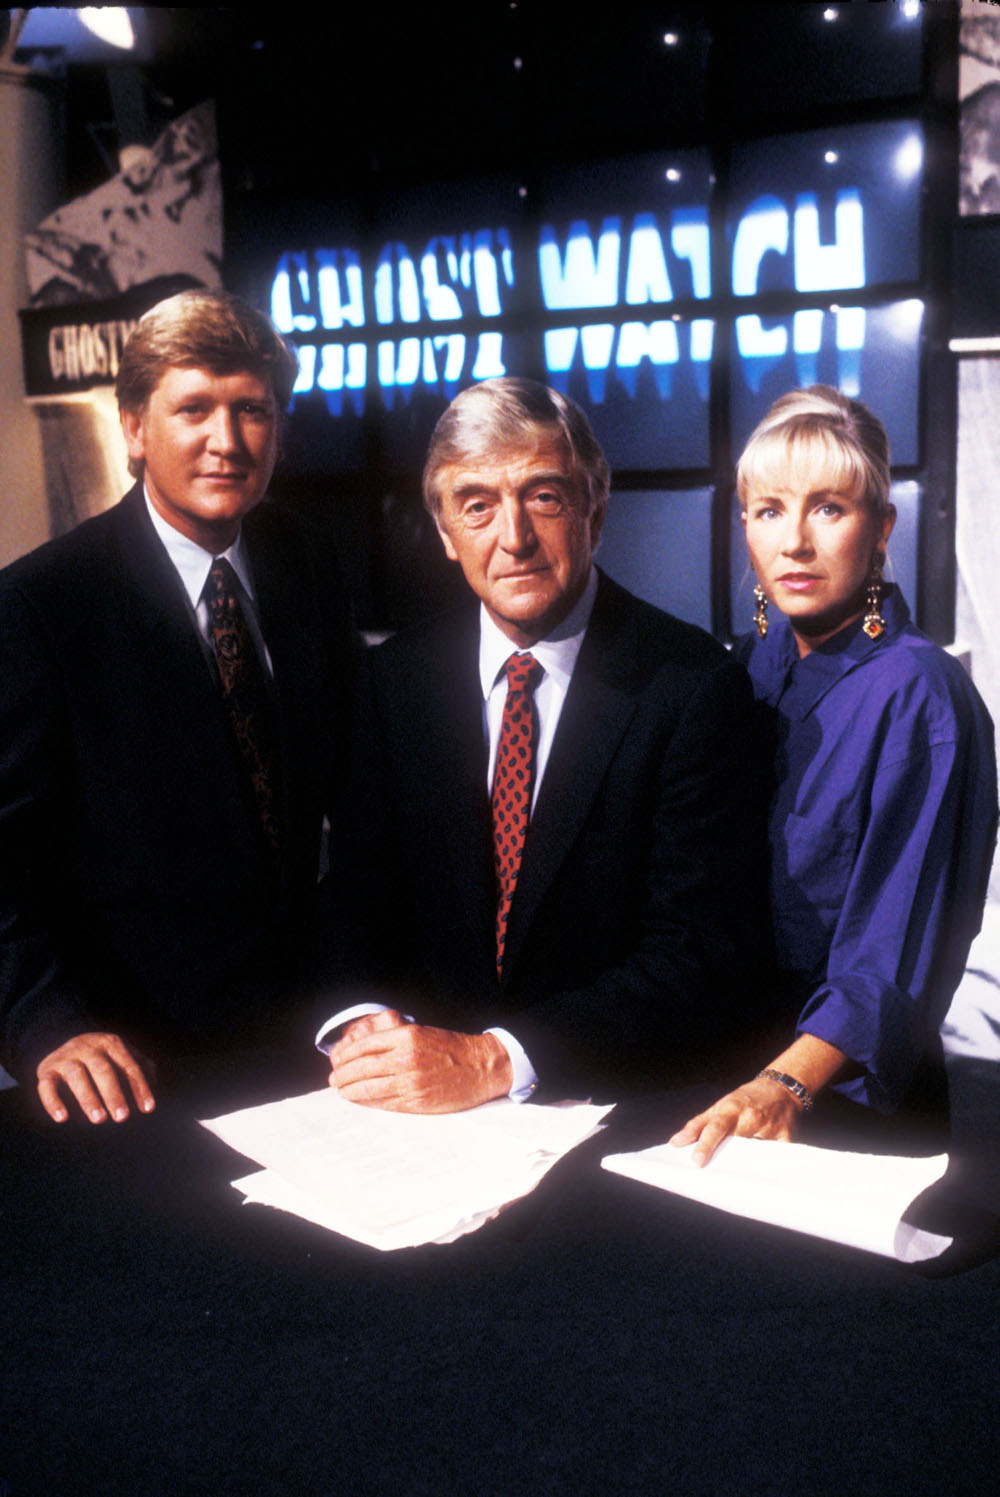 Ghostwatch - Shudder Brings Infamous Banned BBC Program Ghostwatch to the States